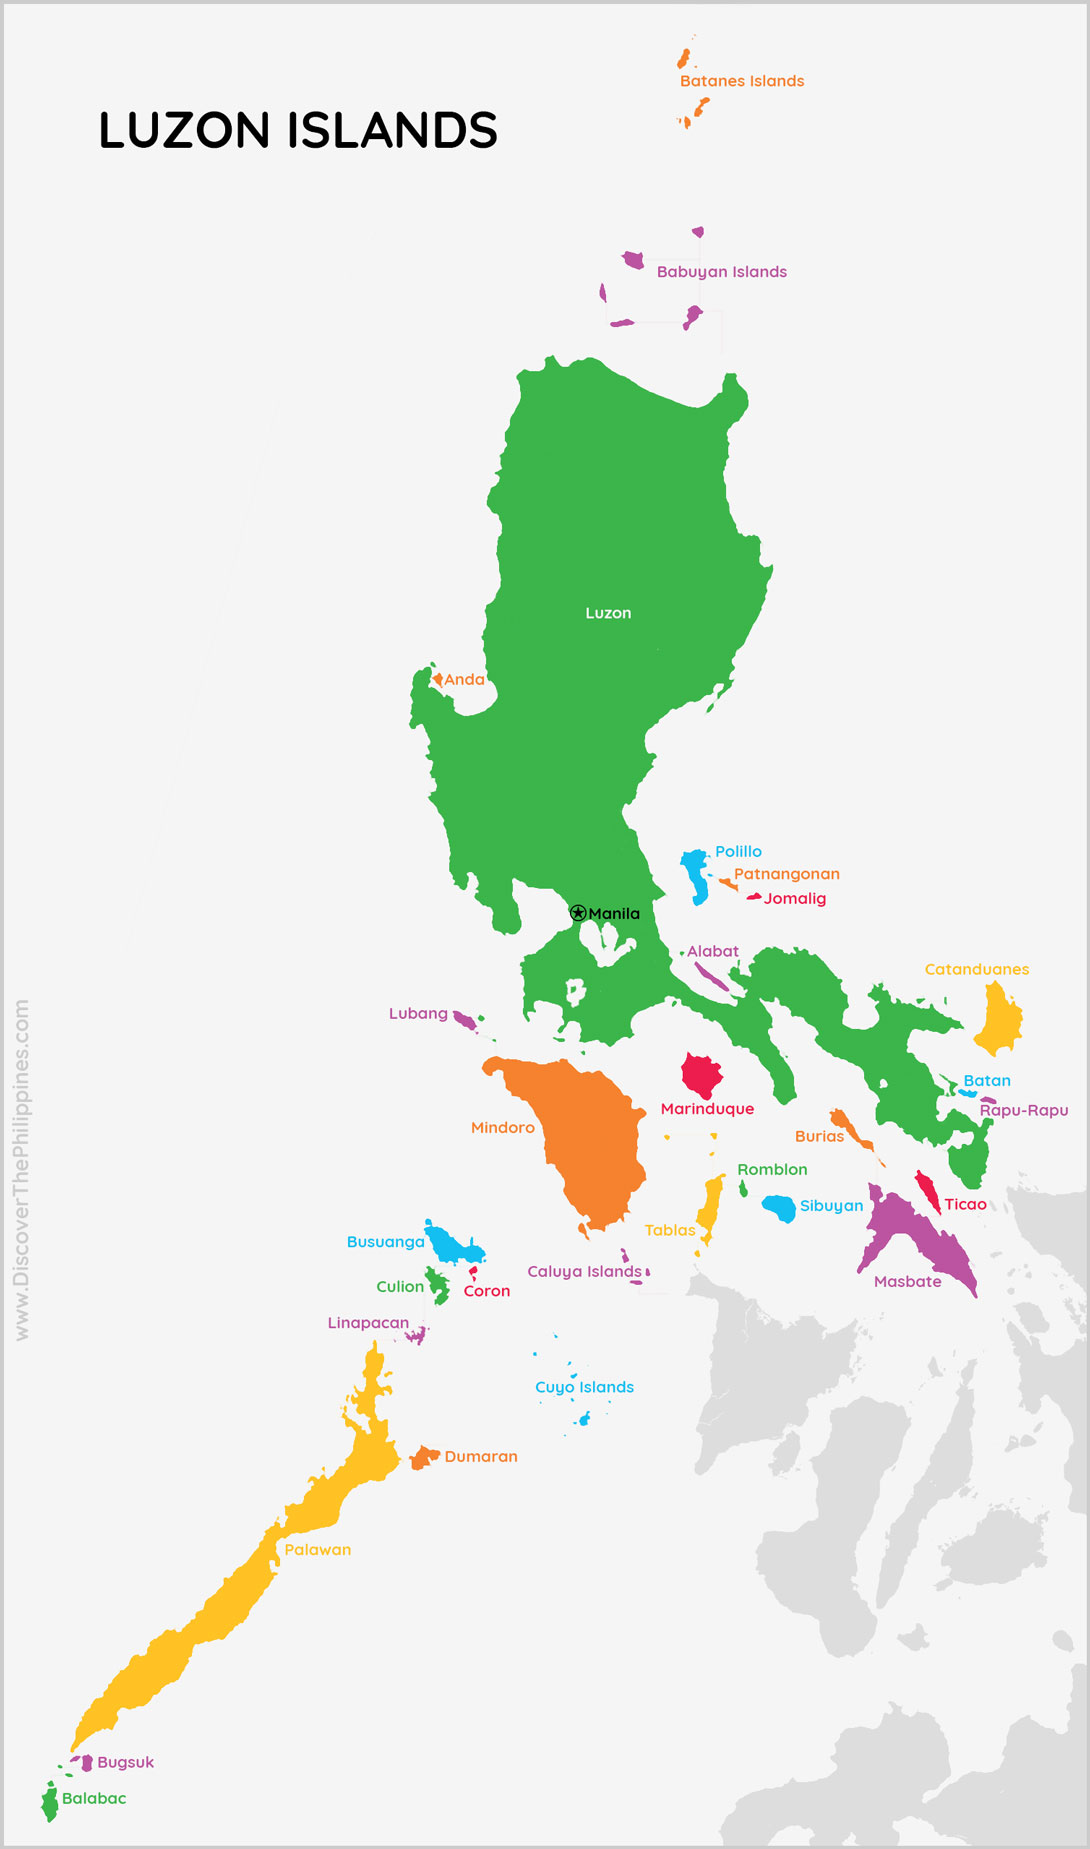 Luzon Island Group Map